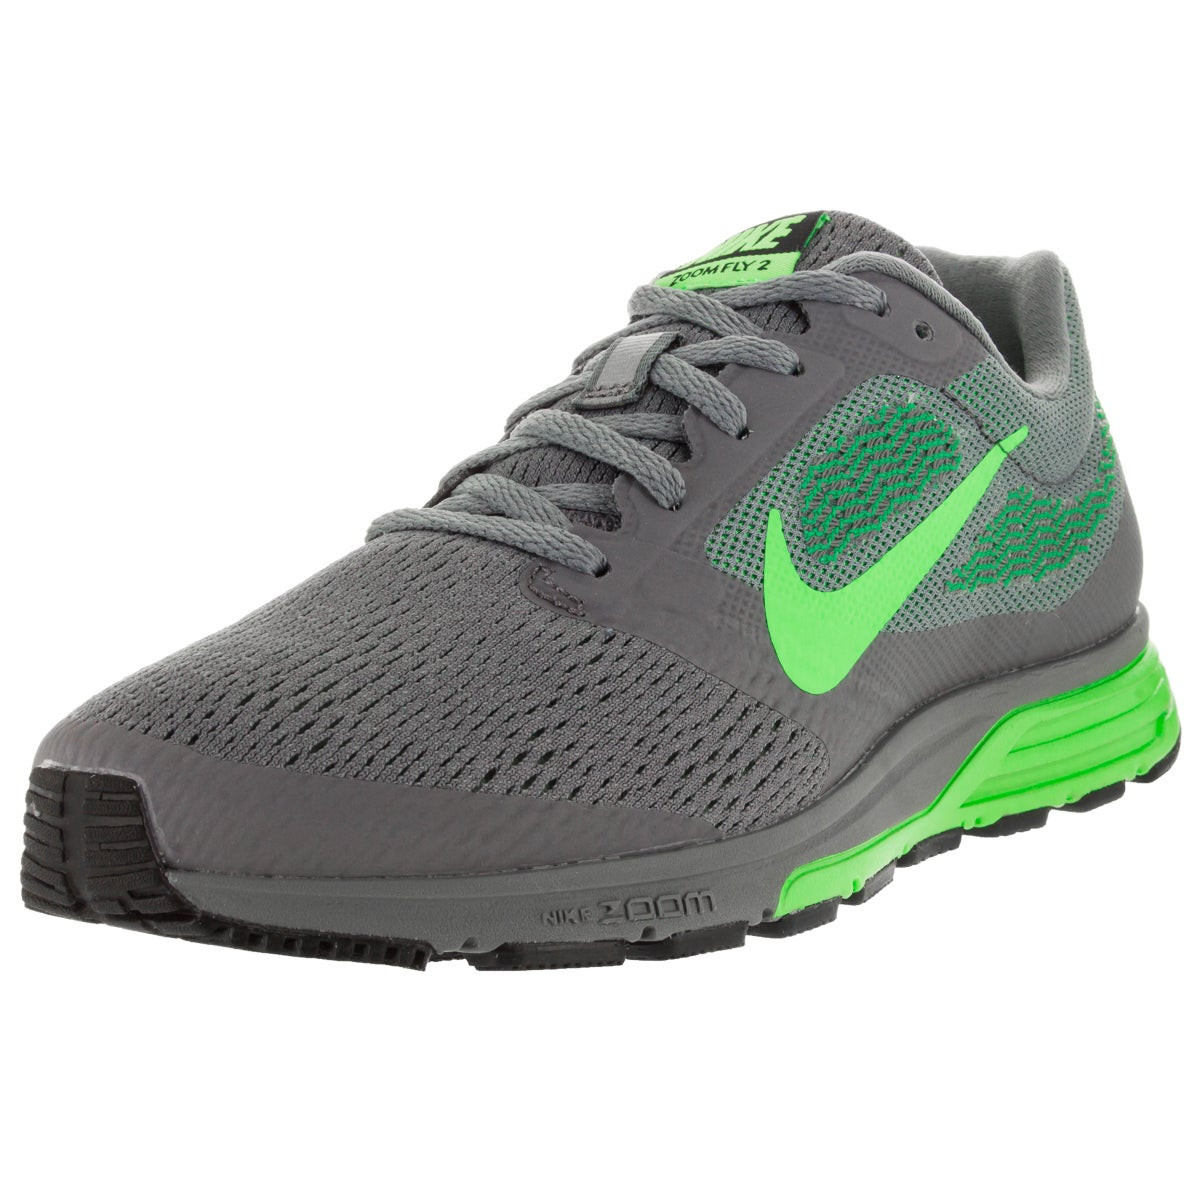 c4433f44d7f3 Shop Nike Women s Air Zoom Fly 2 Cool Grey  Green Lcd G Running Shoe - Free  Shipping Today - Overstock - 12321723